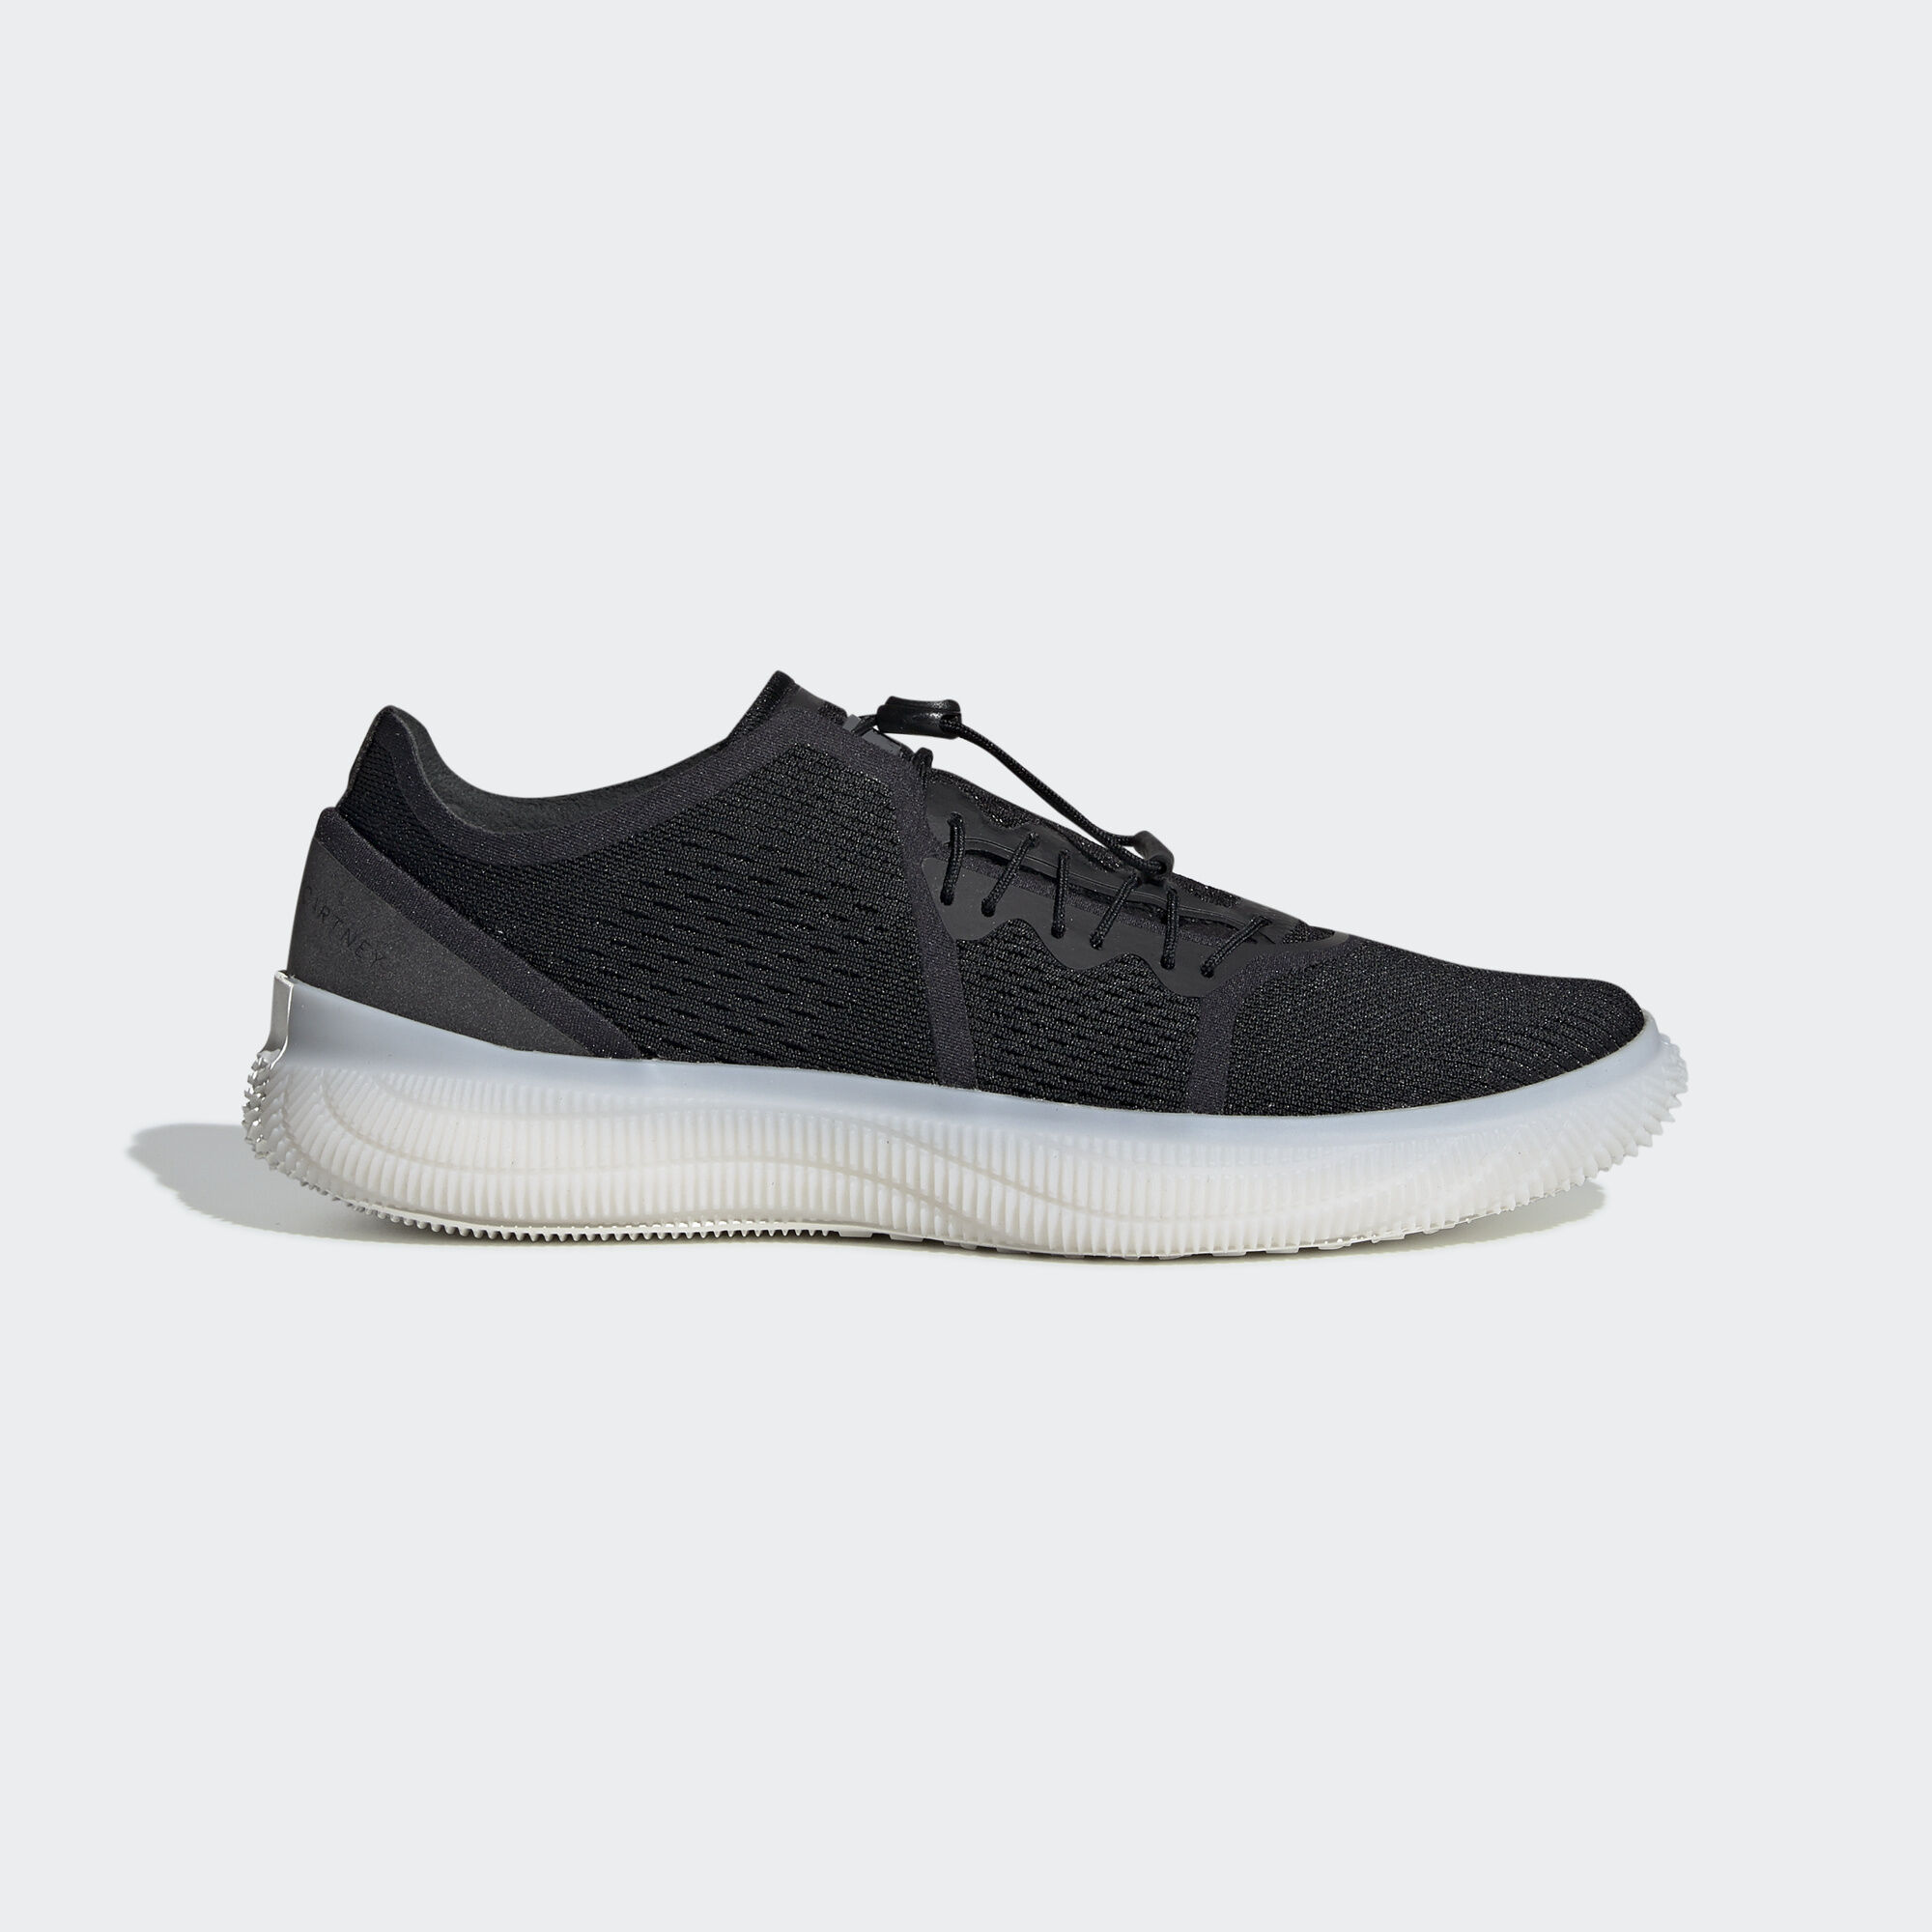 6f12e3b99eb1 adidas - Pureboost Trainer Shoes Core Black   Core Black   Dgh Solid Grey  F36389